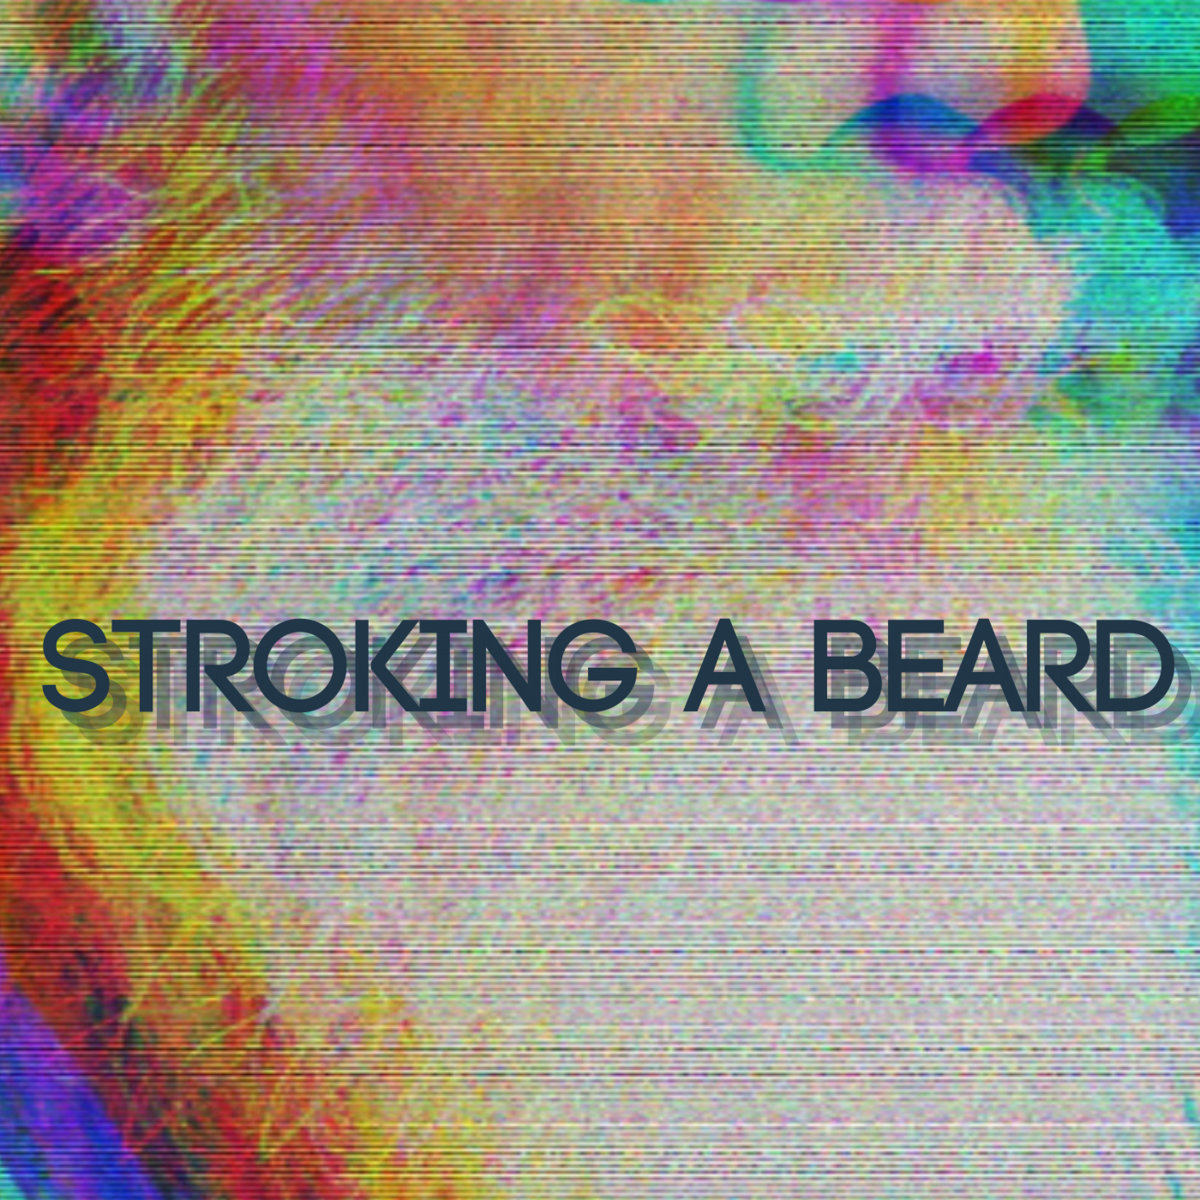 Stroking A Beard by Colwell